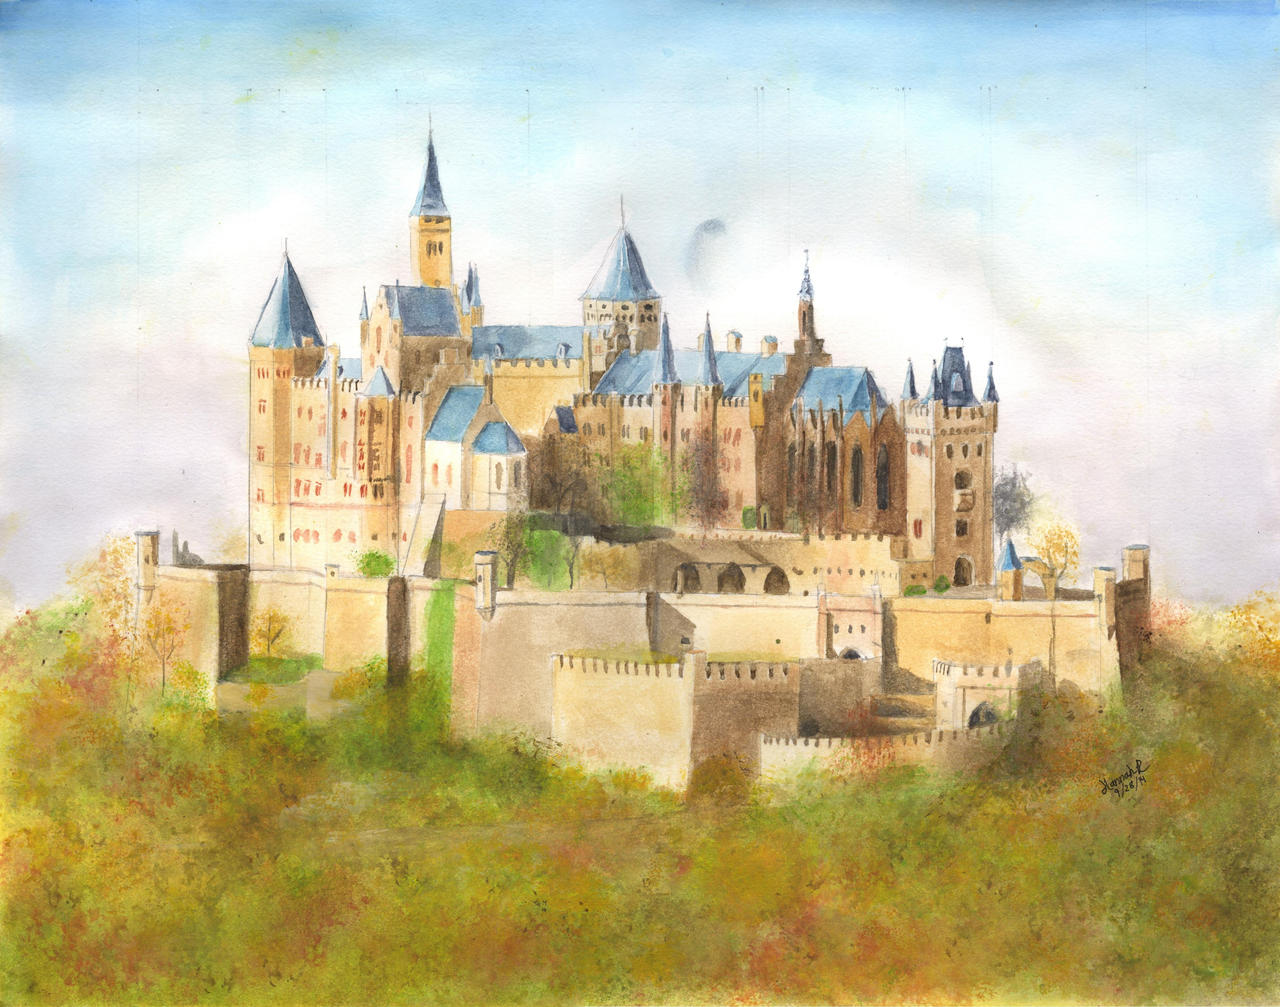 hohenzollern castle by dirtypaws13 - photo #1